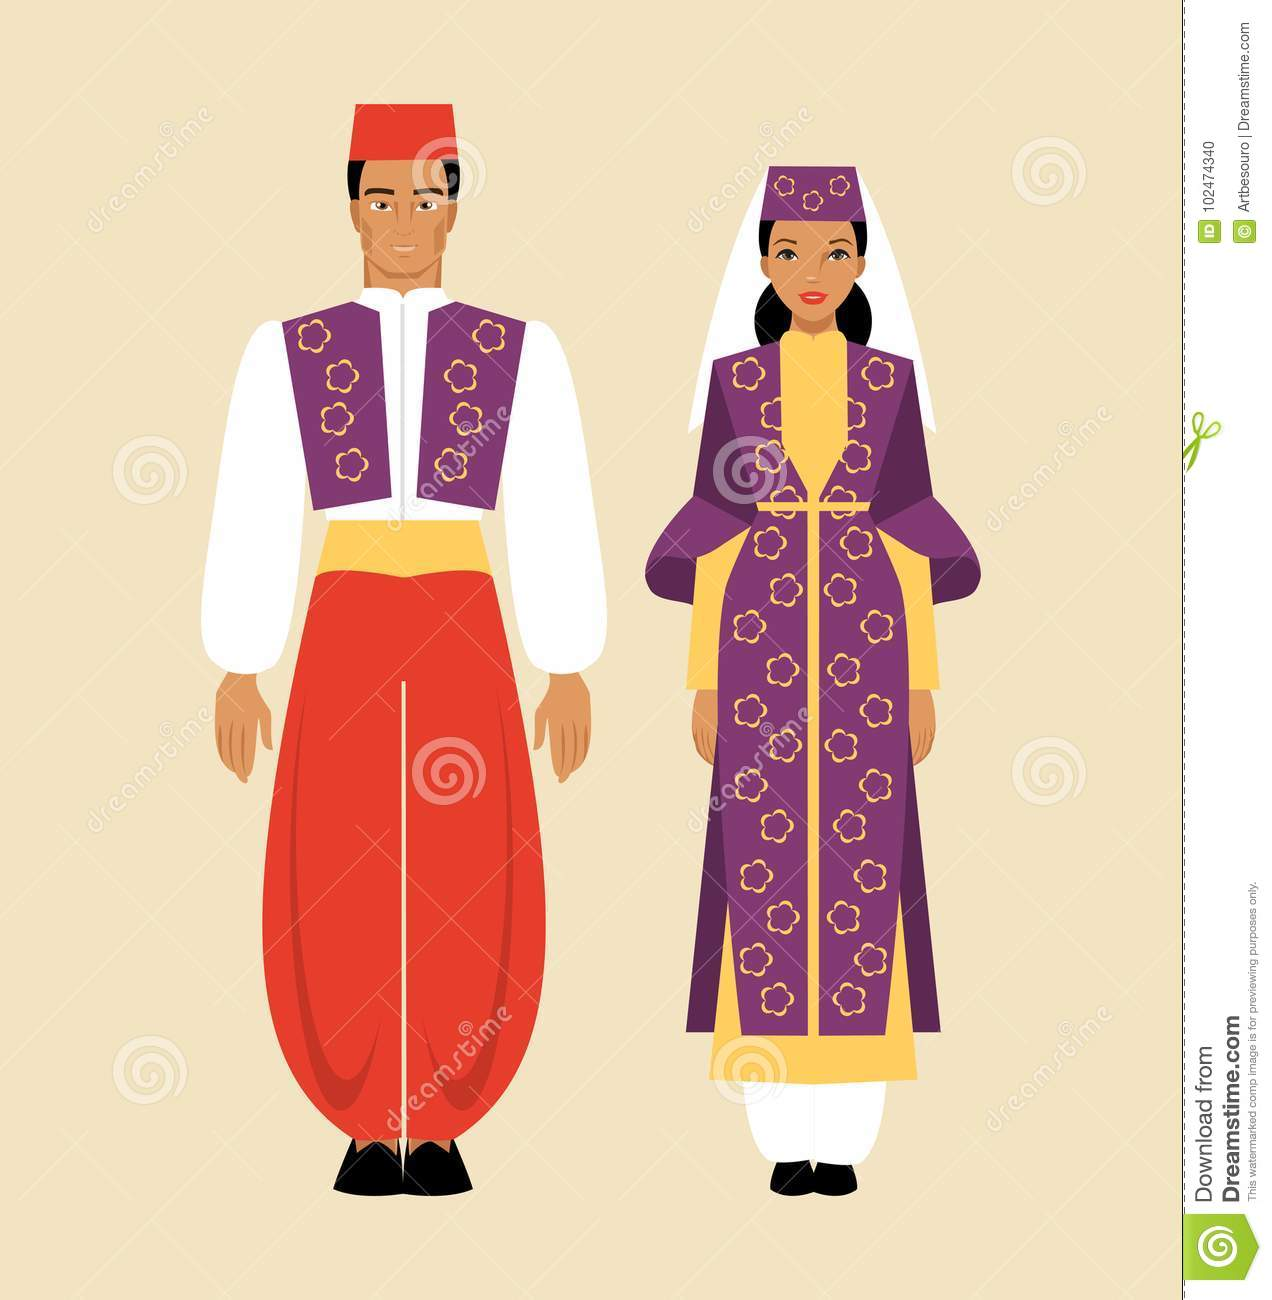 Turkish Traditional Costume Stock Vector - Illustration of